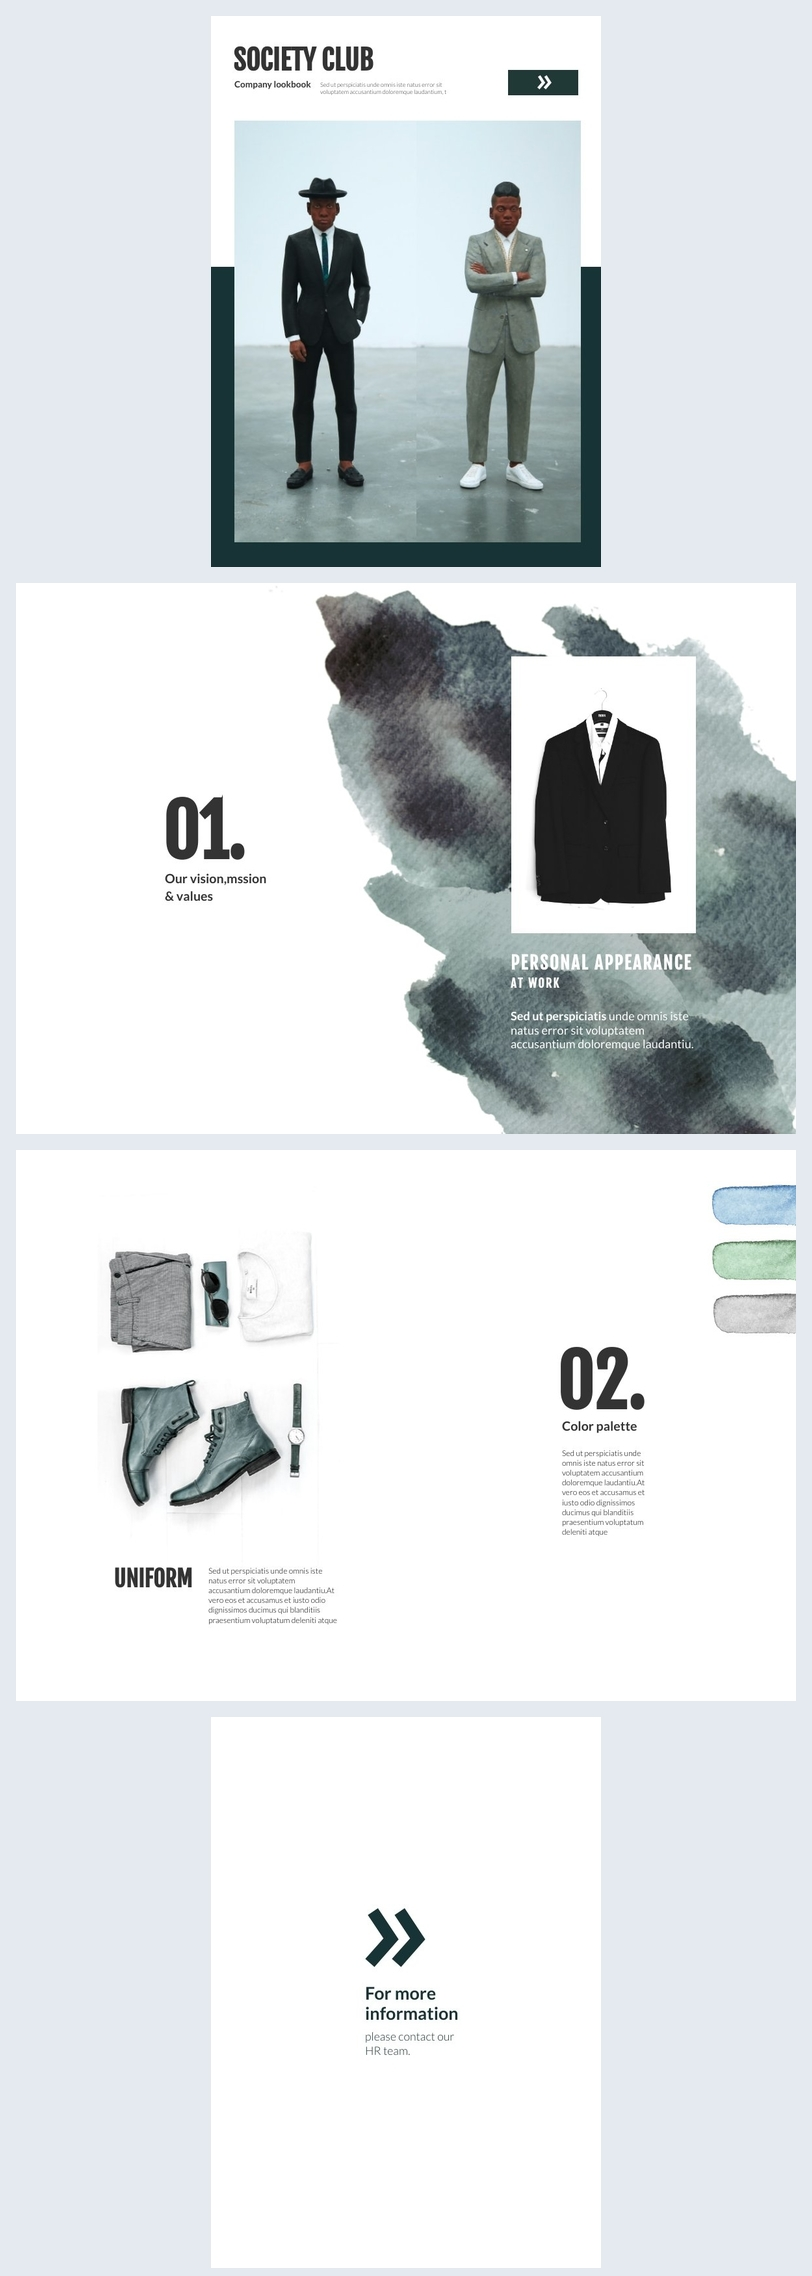 Firmen-Lookbook Design-Idee